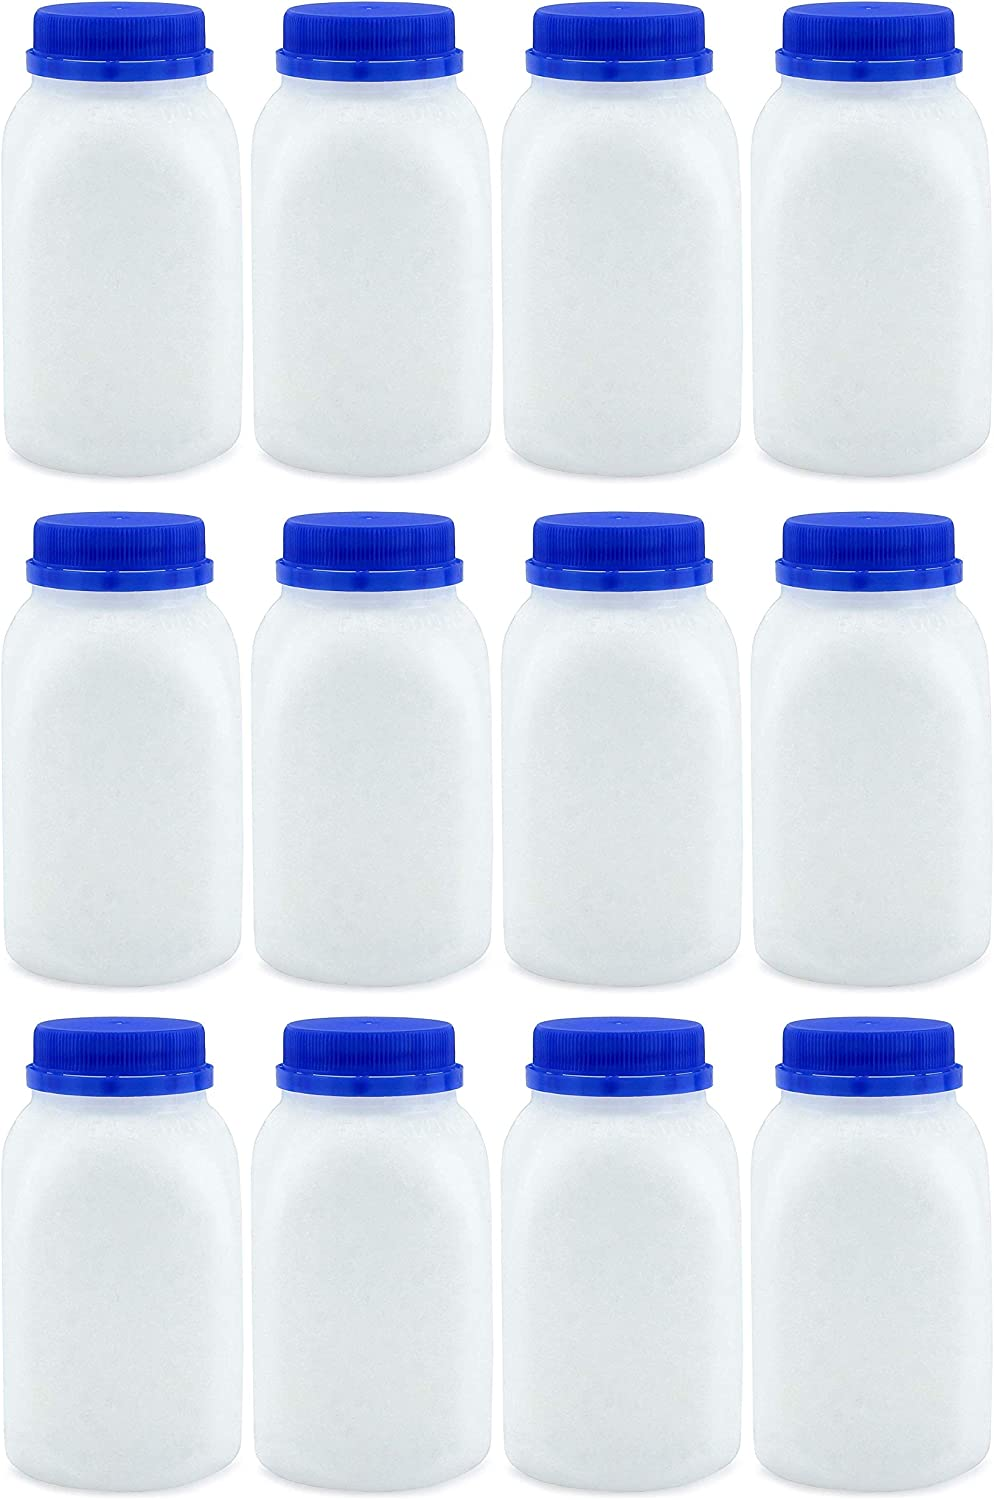 8-Ounce Plastic Milk Bottles (12-Pack); HDPE Bottles Great for Milk, Juice, Smoothies, Lunch Box & More, BPA-Free, Dishwasher-Safe, BPA-free